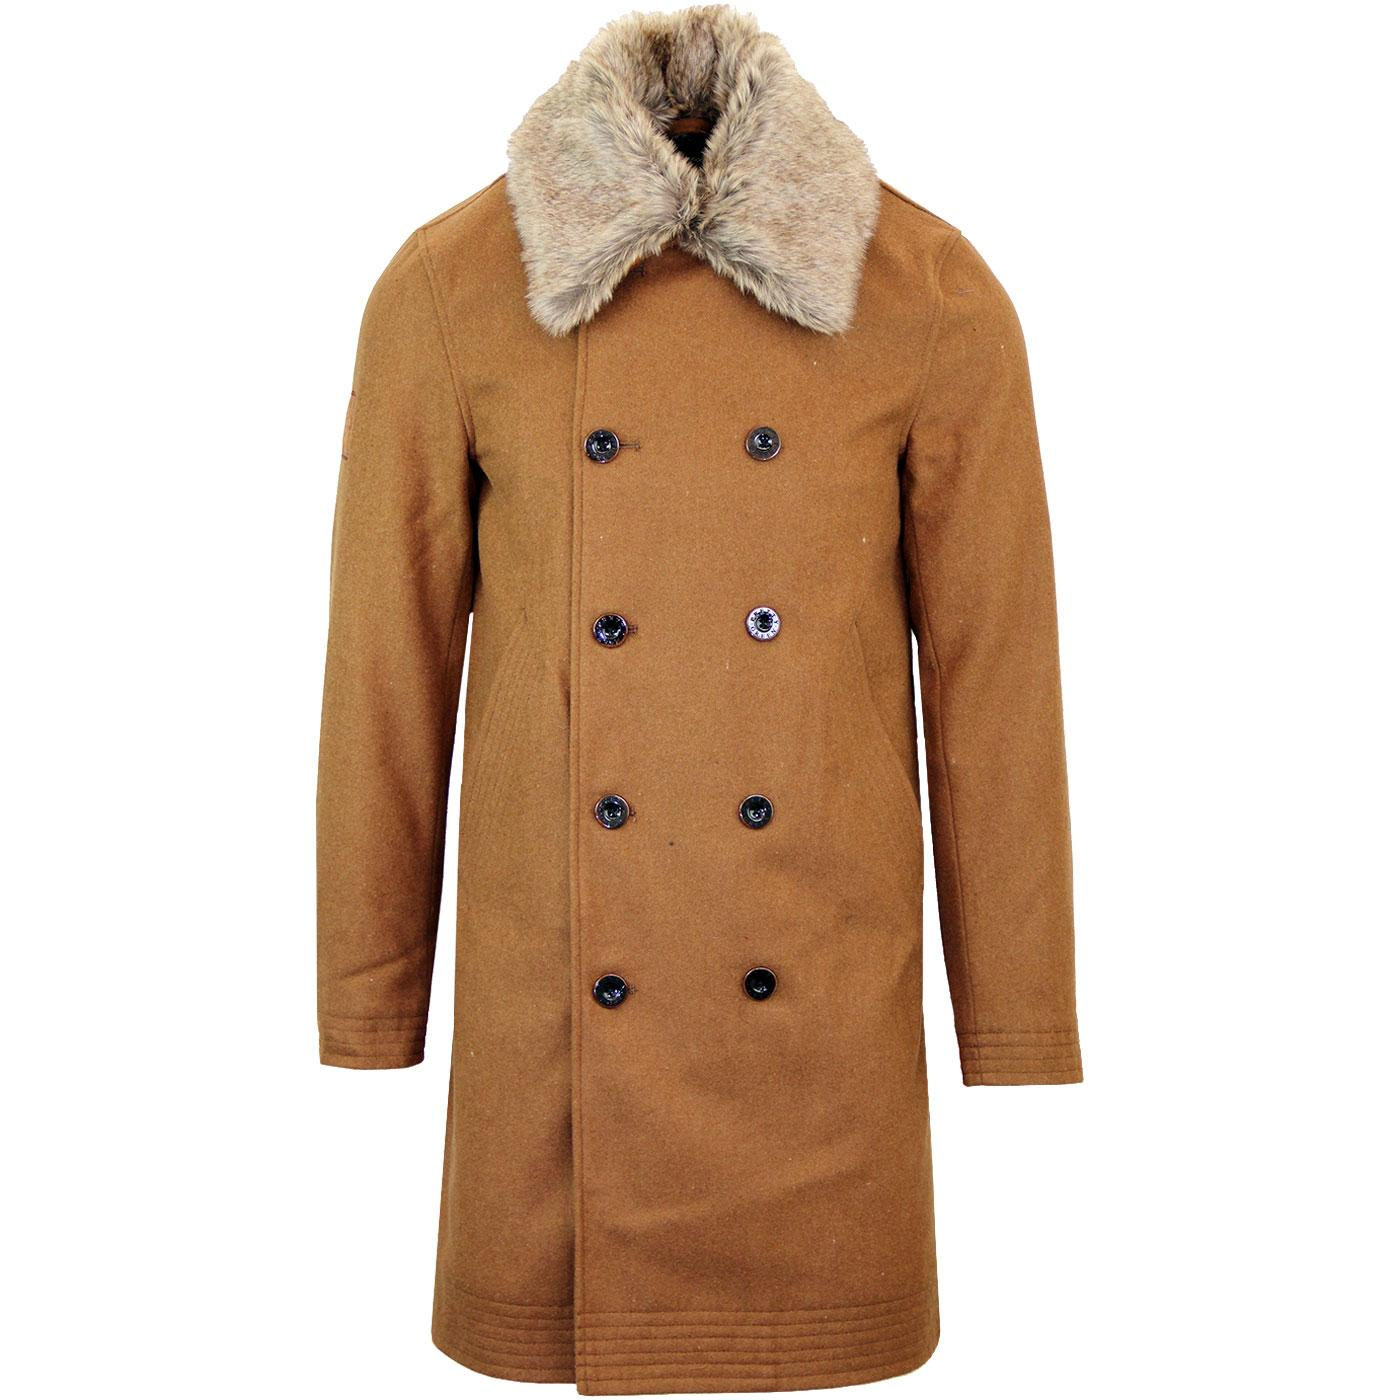 PRETTY GREEN Retro Wool Military Trench Coat TAN